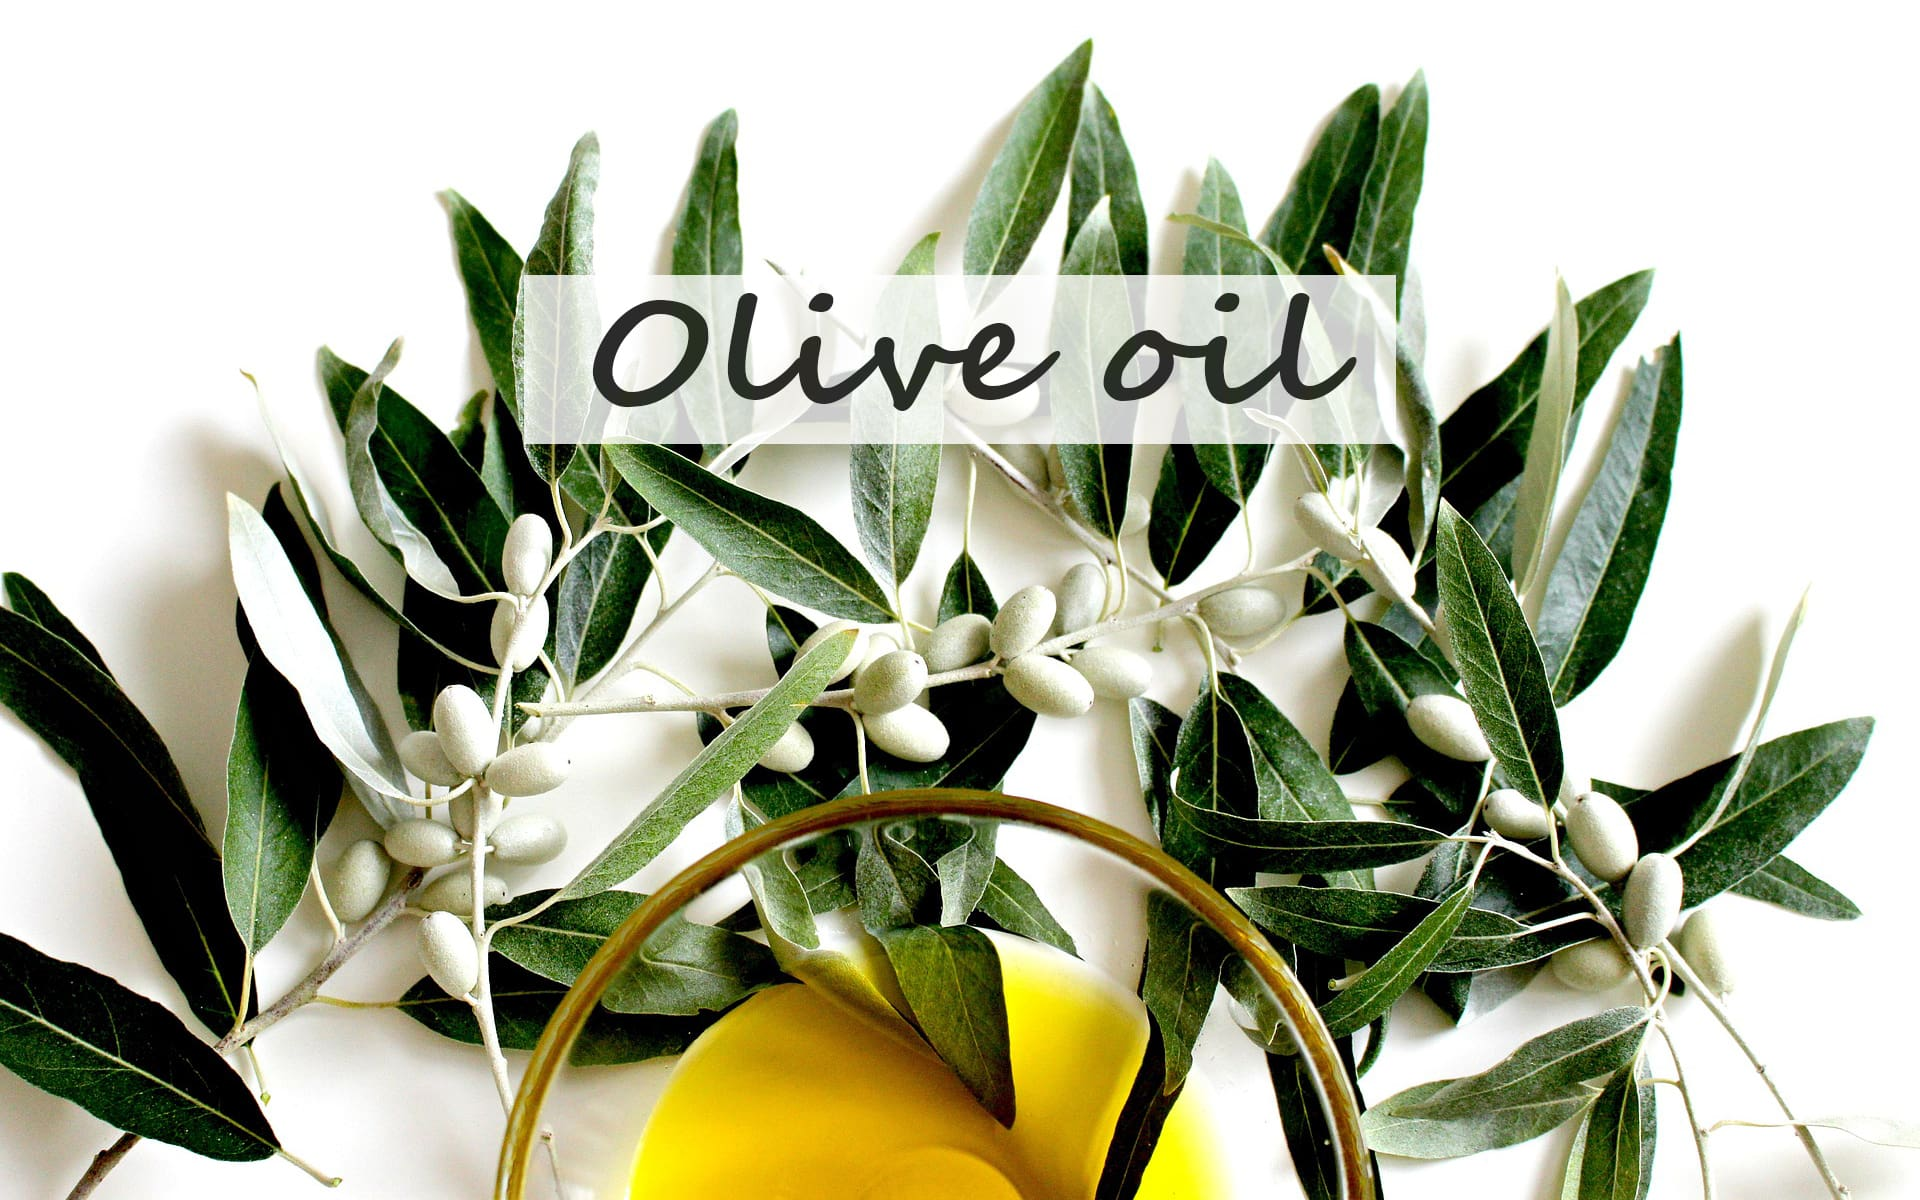 olive oil tree branch